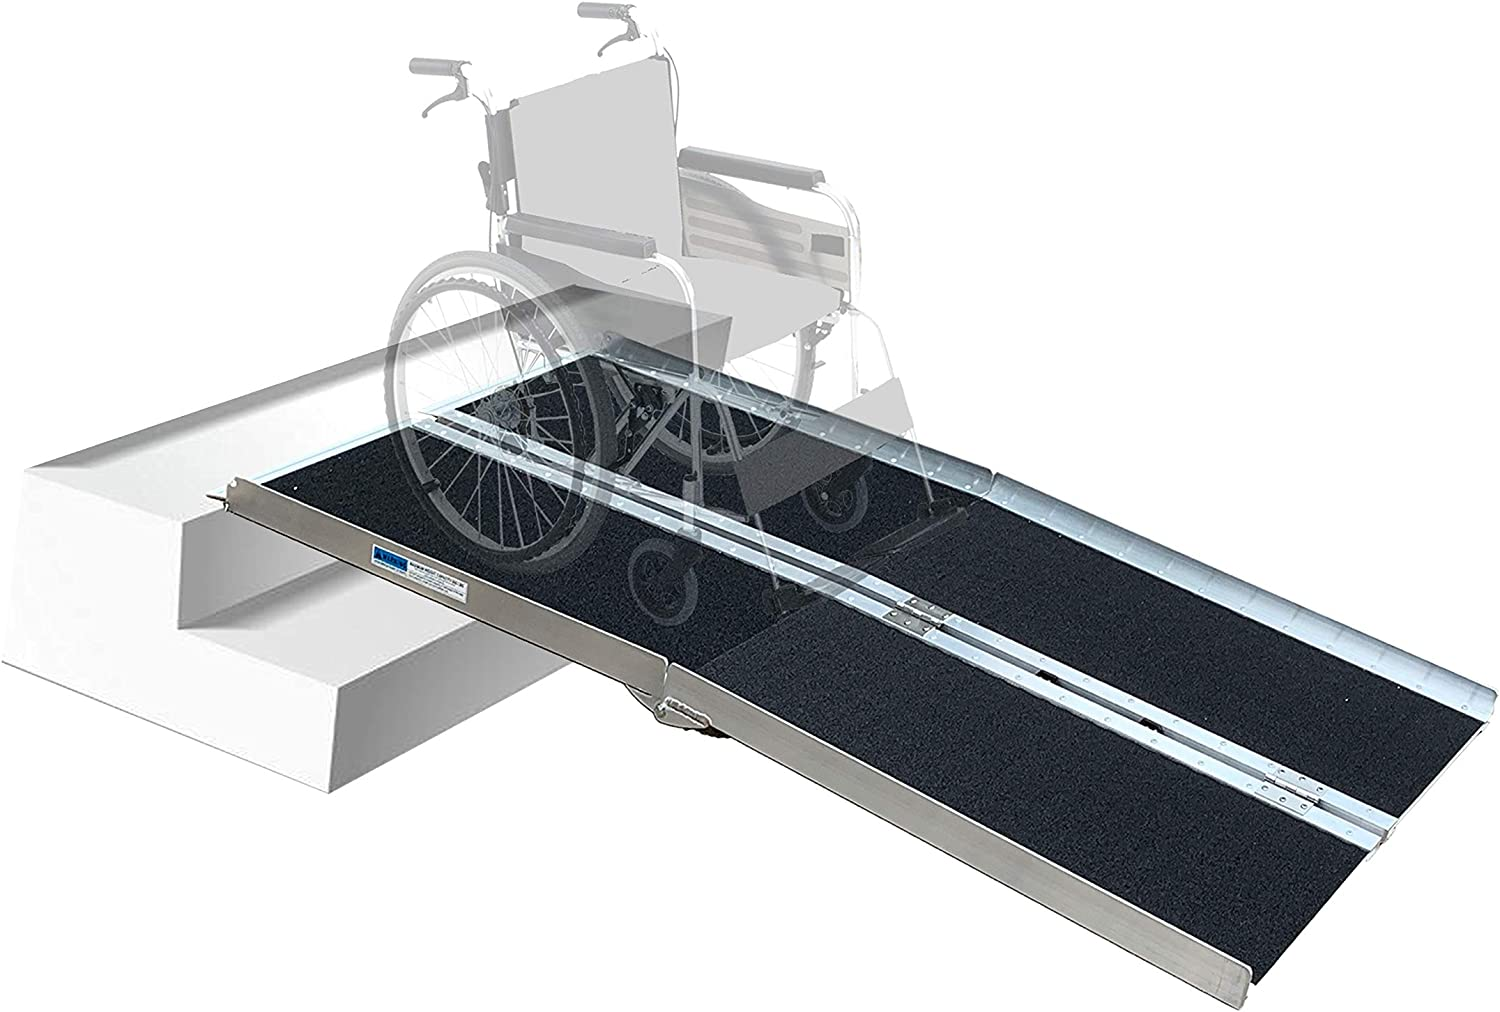 Hapelo Updated Single Fold Non-Skid Aluminum Scooter Mobility Wheelchair Ramp,6' Lightweight Portable, Holds Up 600 lbs